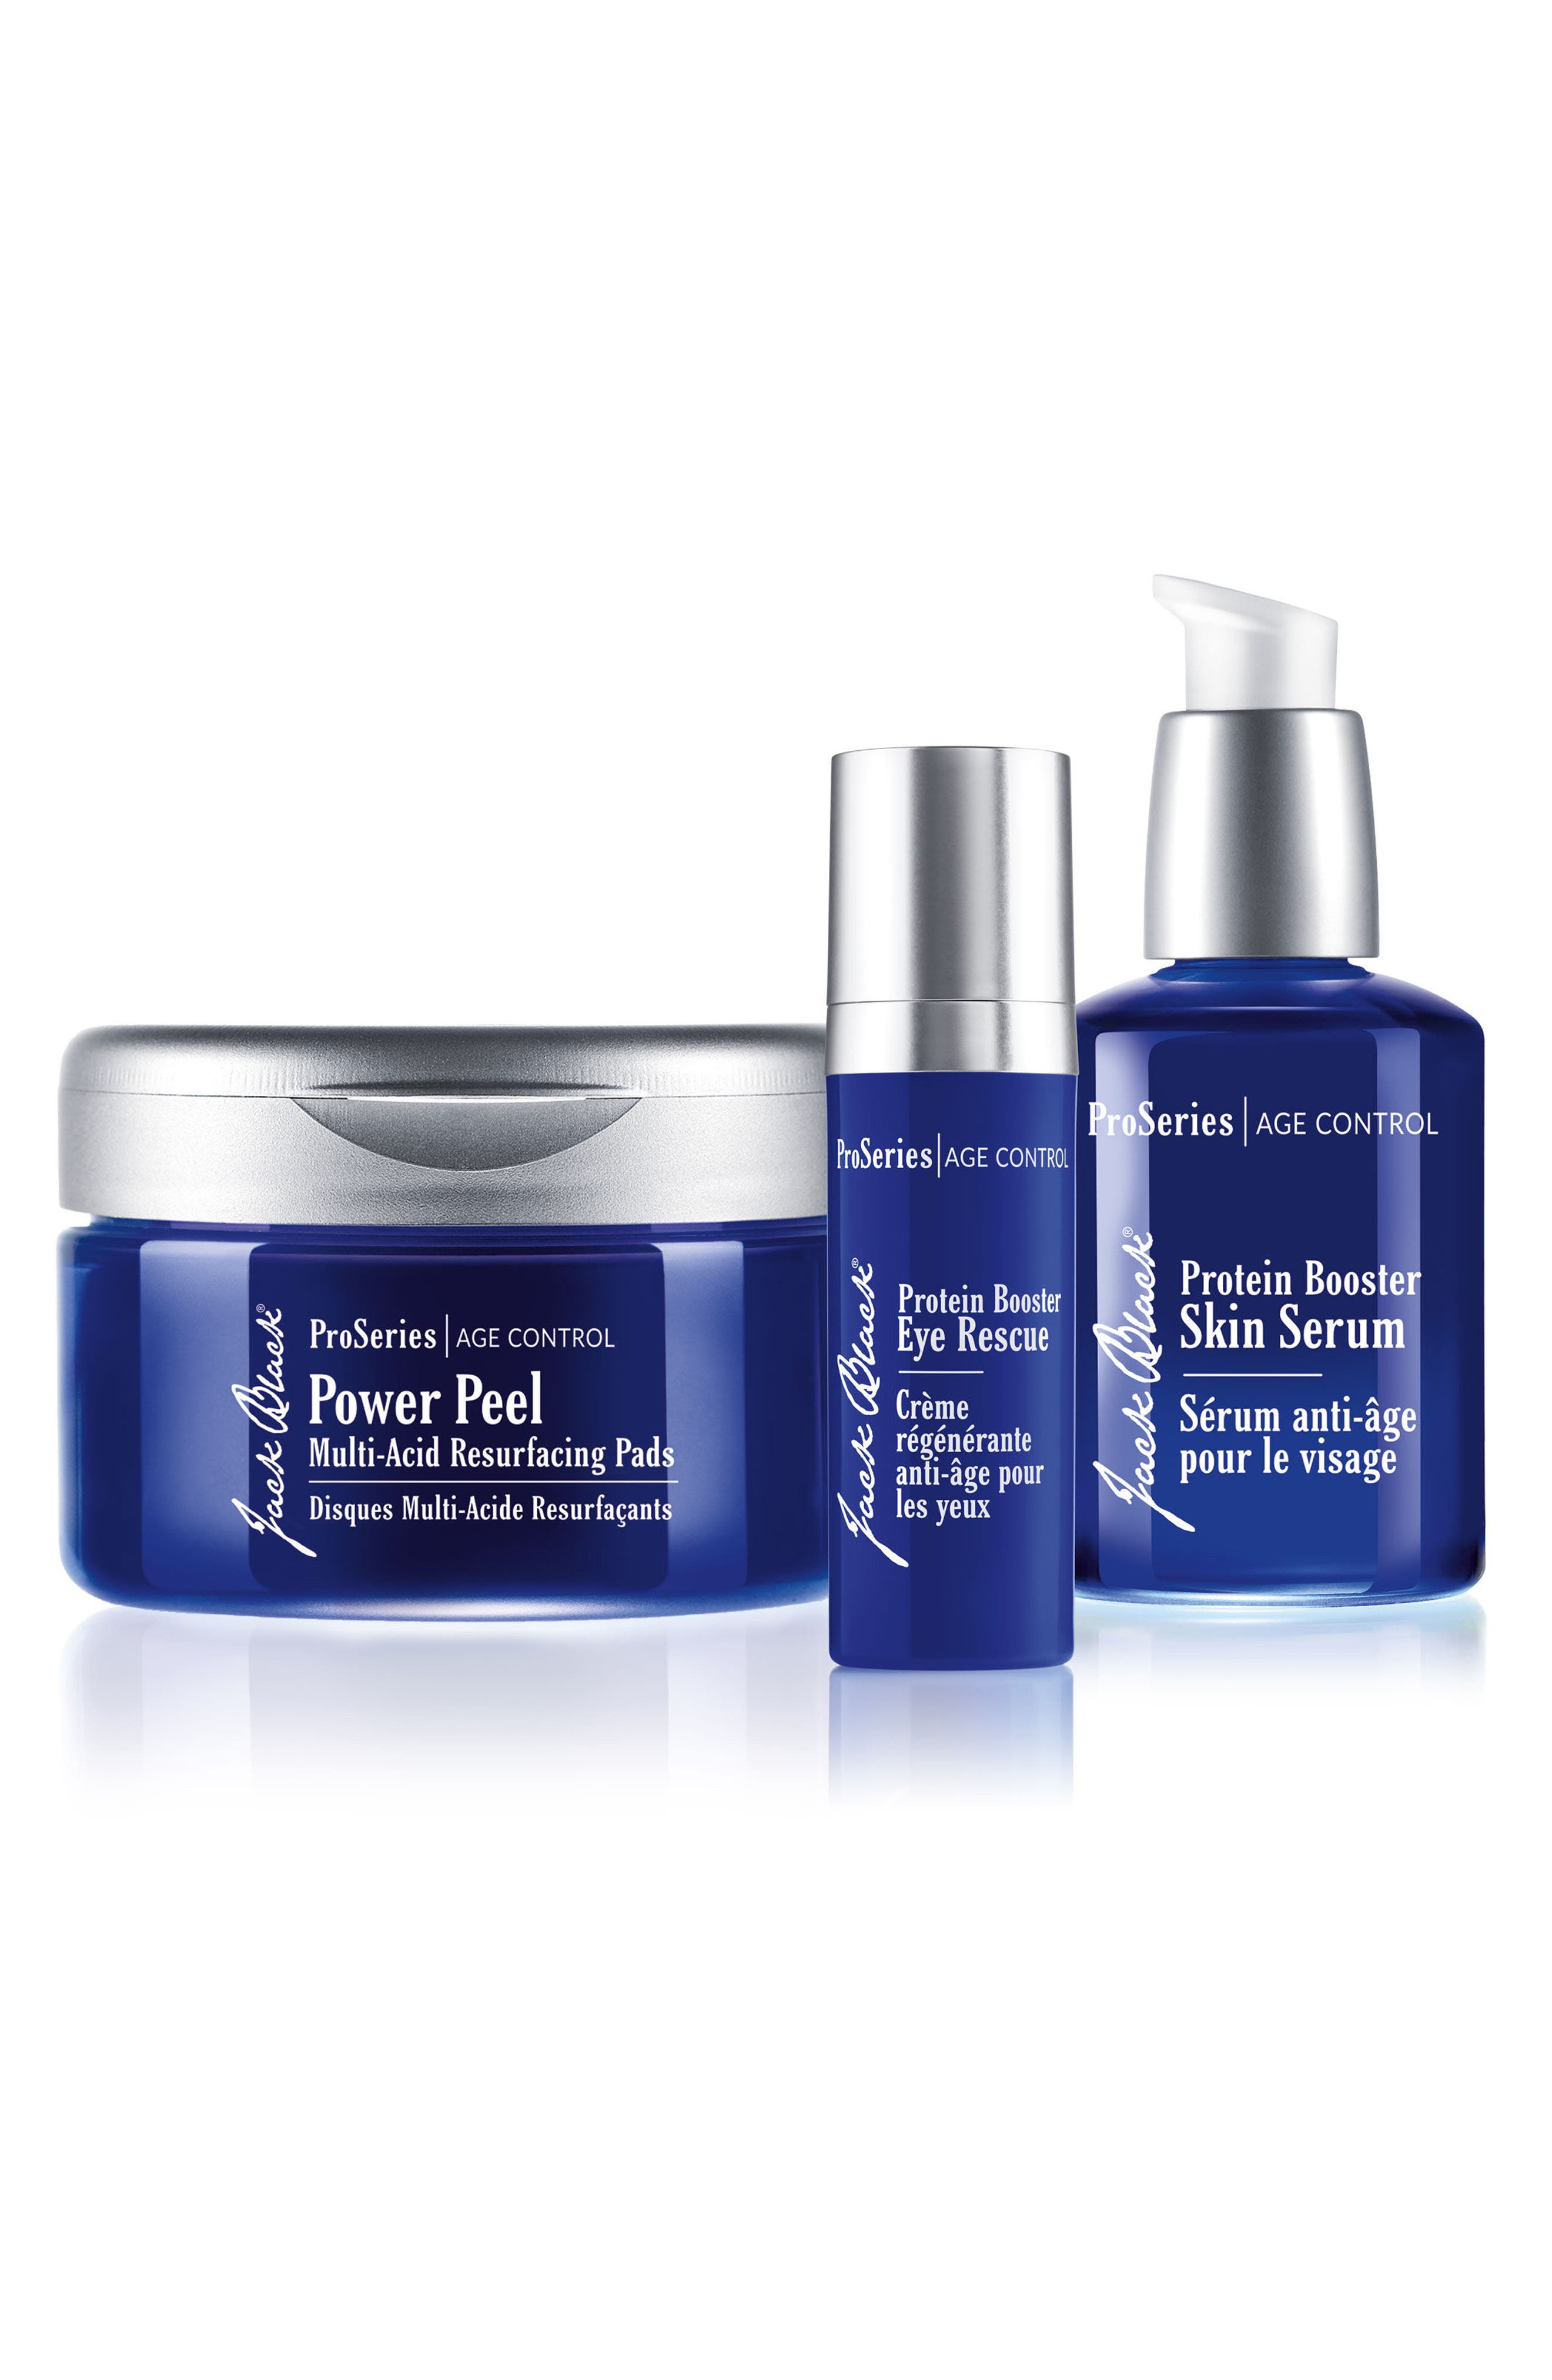 Alternate Image 1 Selected - Jack Black 'Defensive Line RxSeries' Anti-Aging Set ($138 Value)